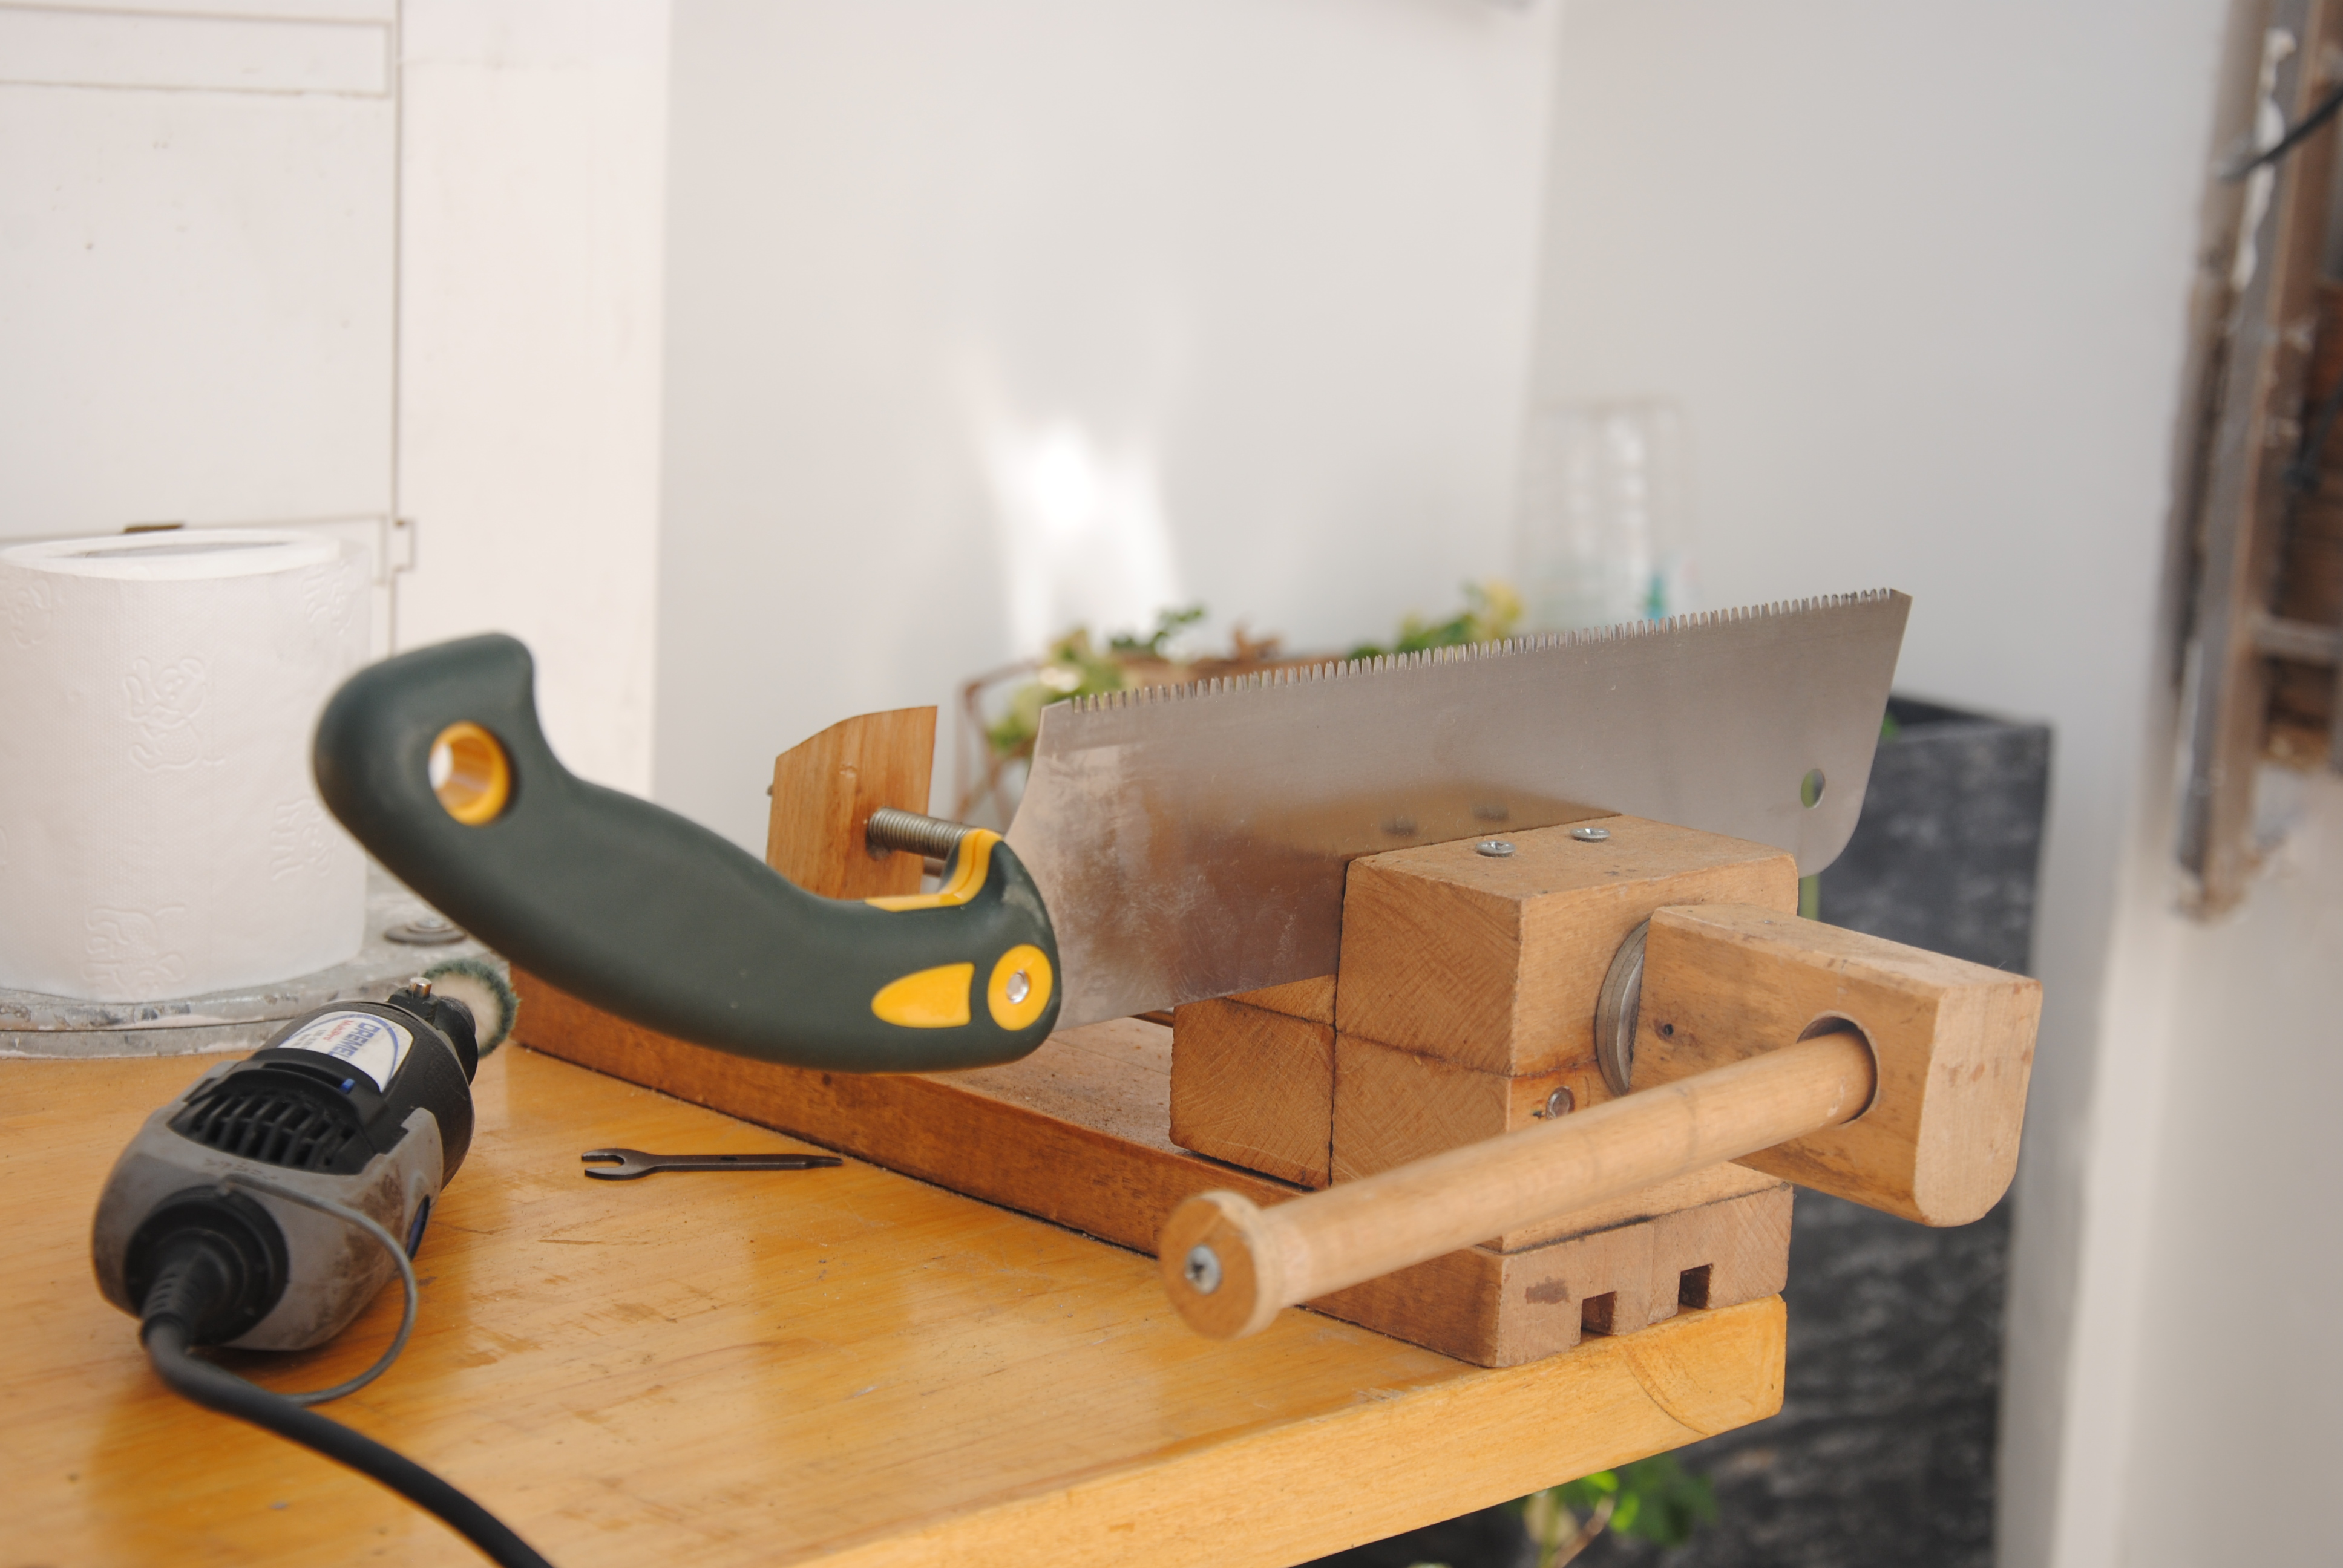 Picture of Secure the Saw in a Vise